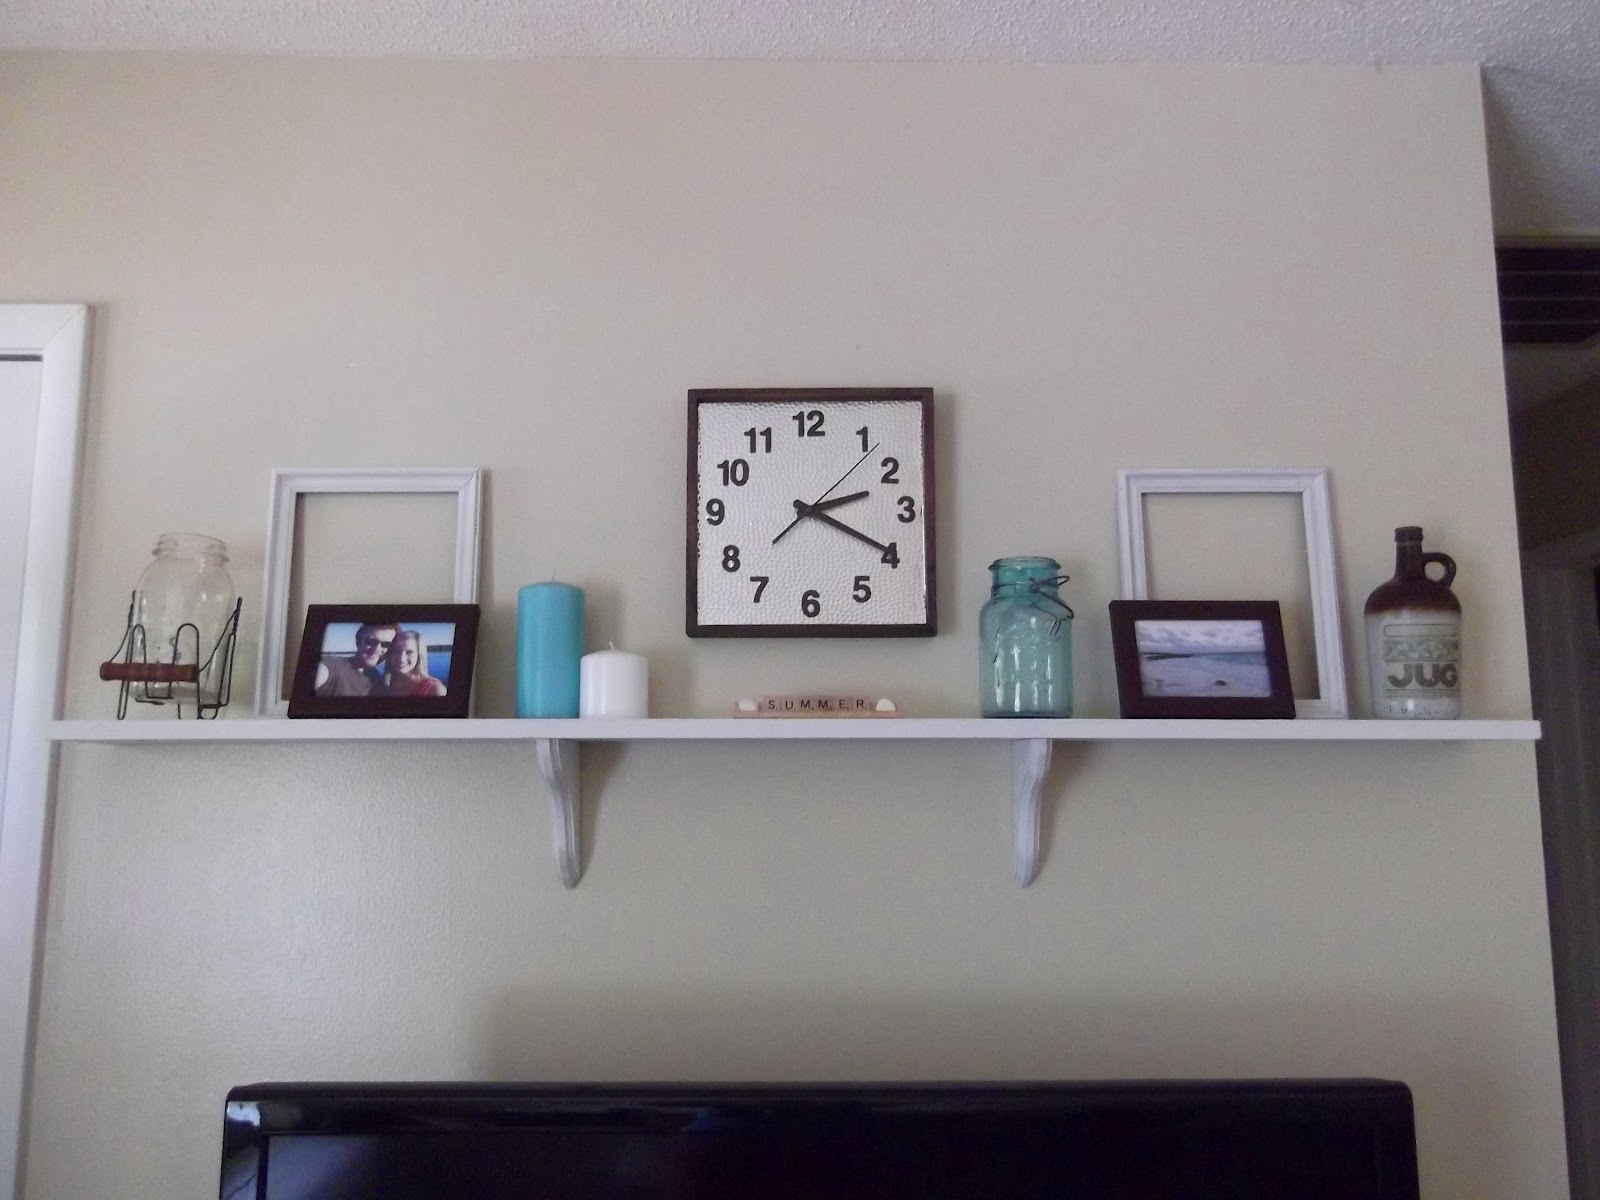 thrifty 31 blog new shelf above tv